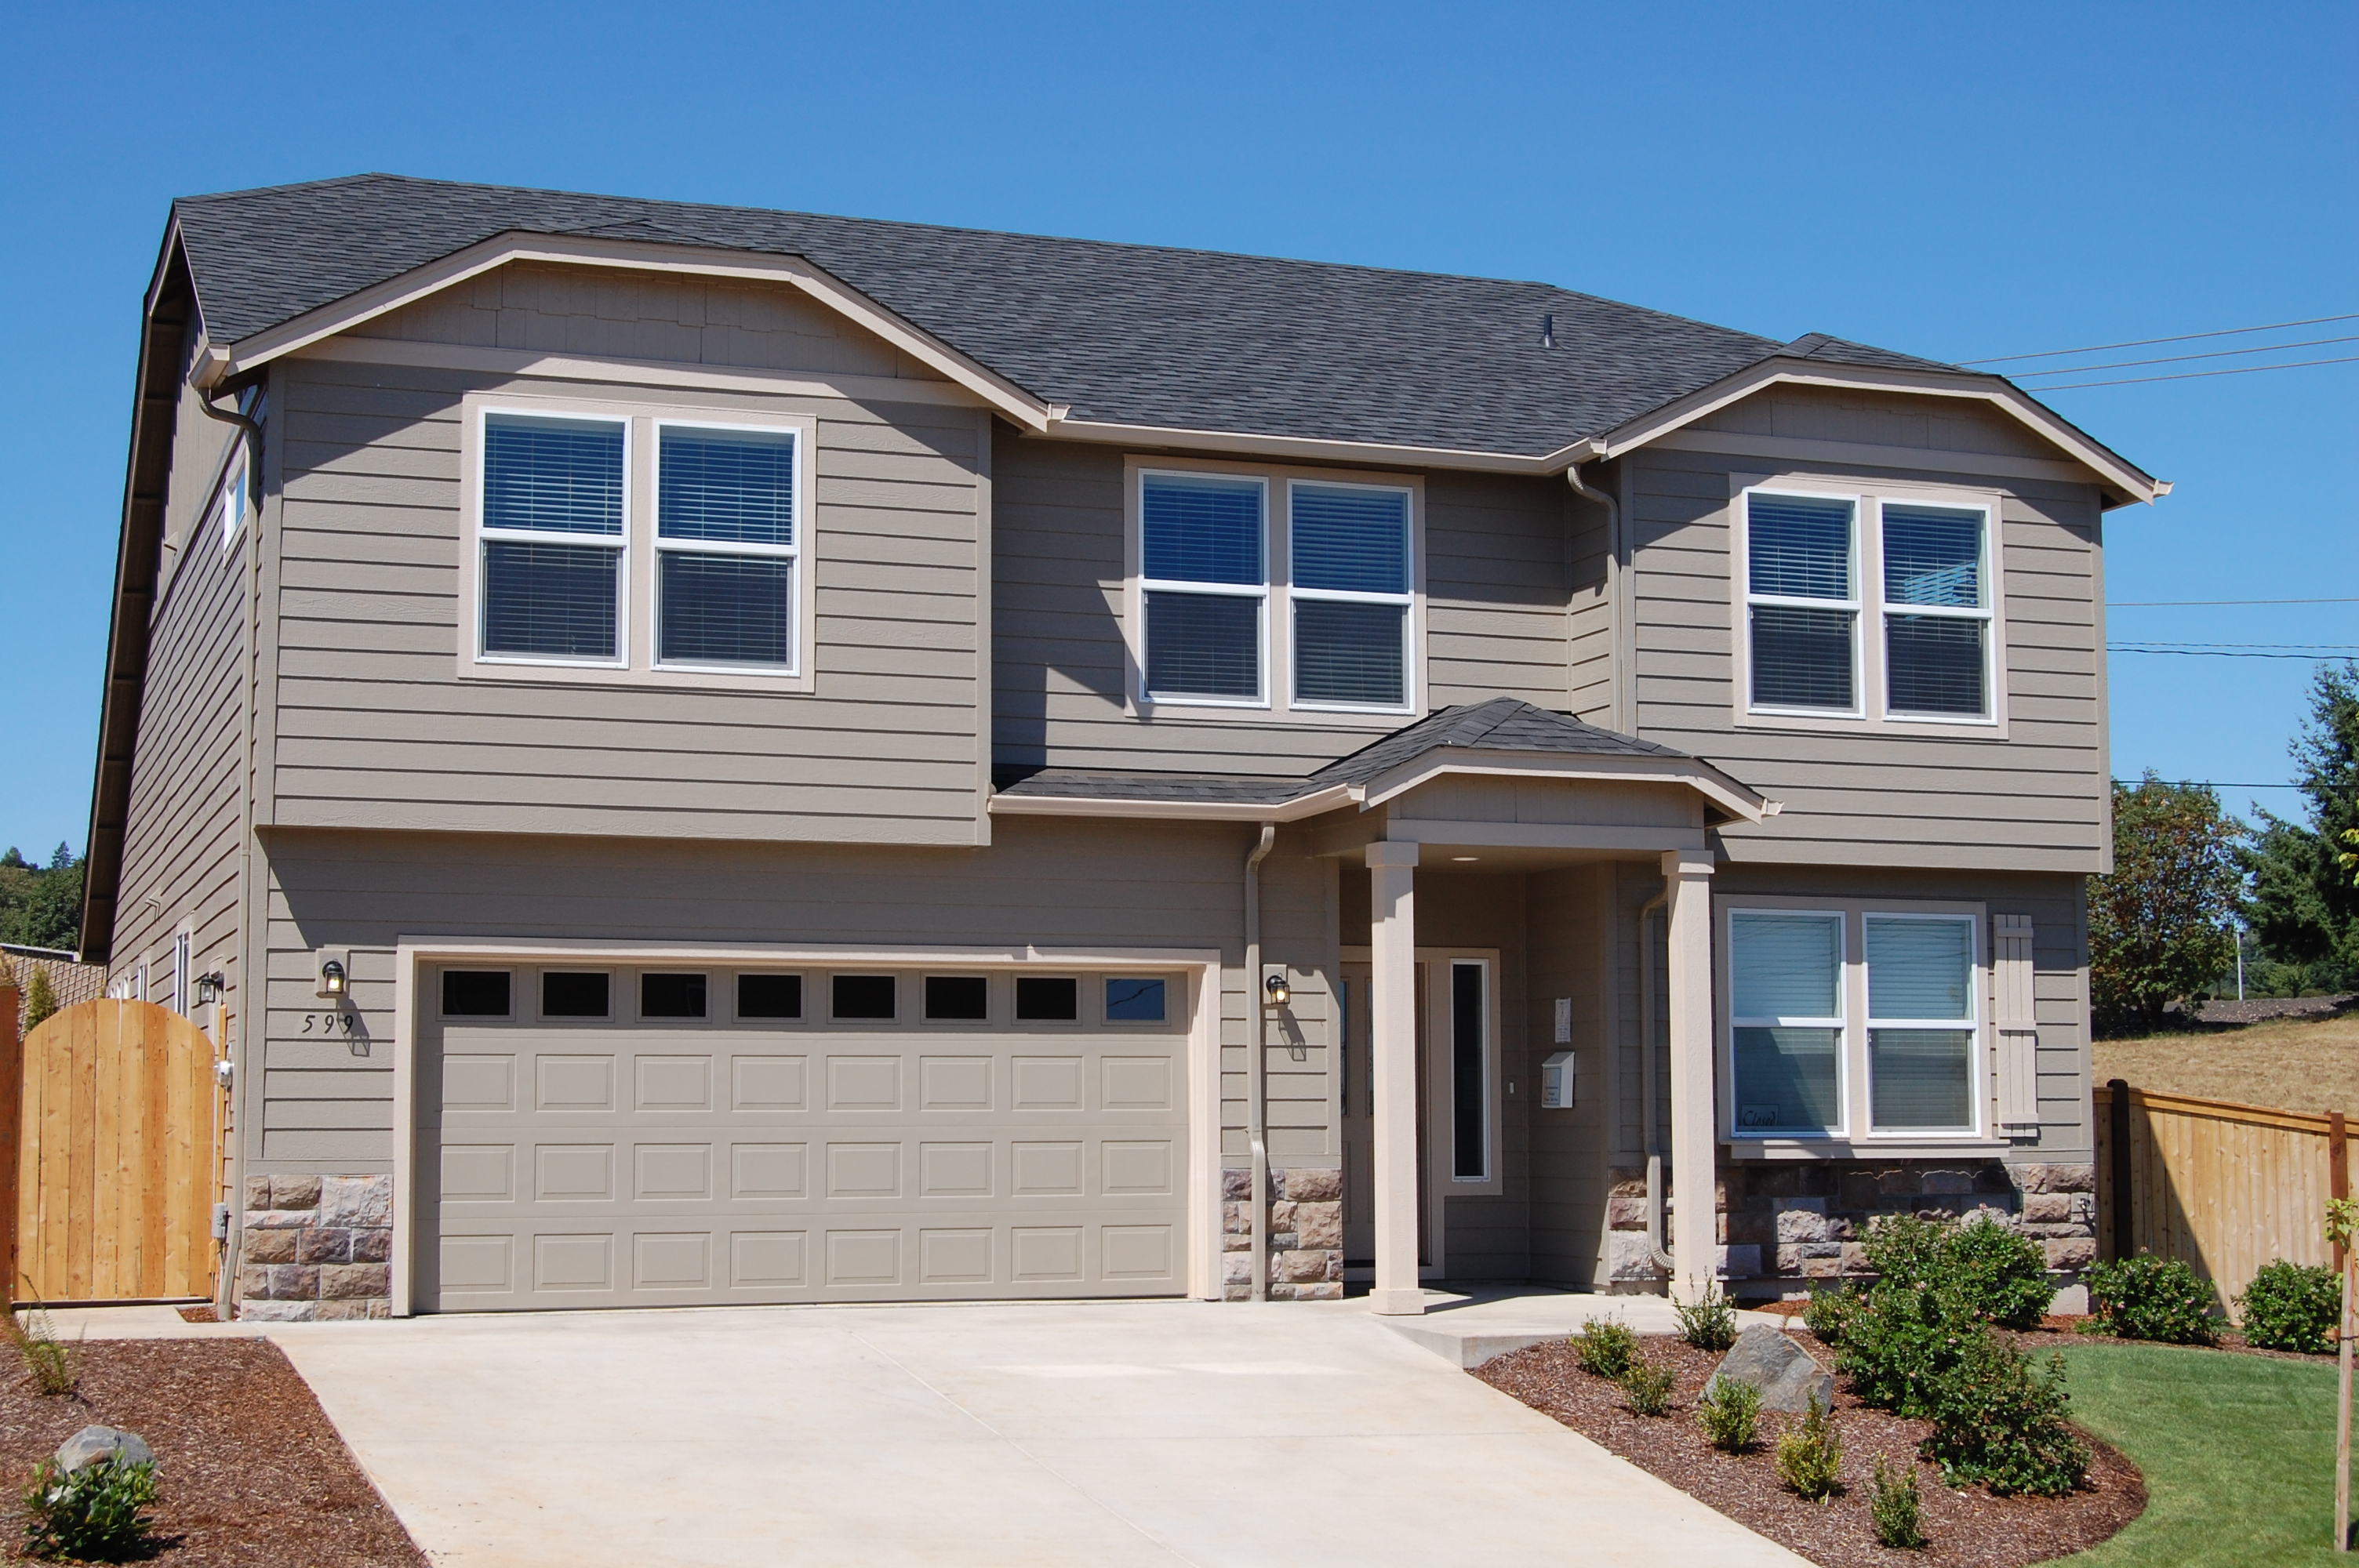 Hayden Homes Becomes Largest Pacific Northwest Homebuilder